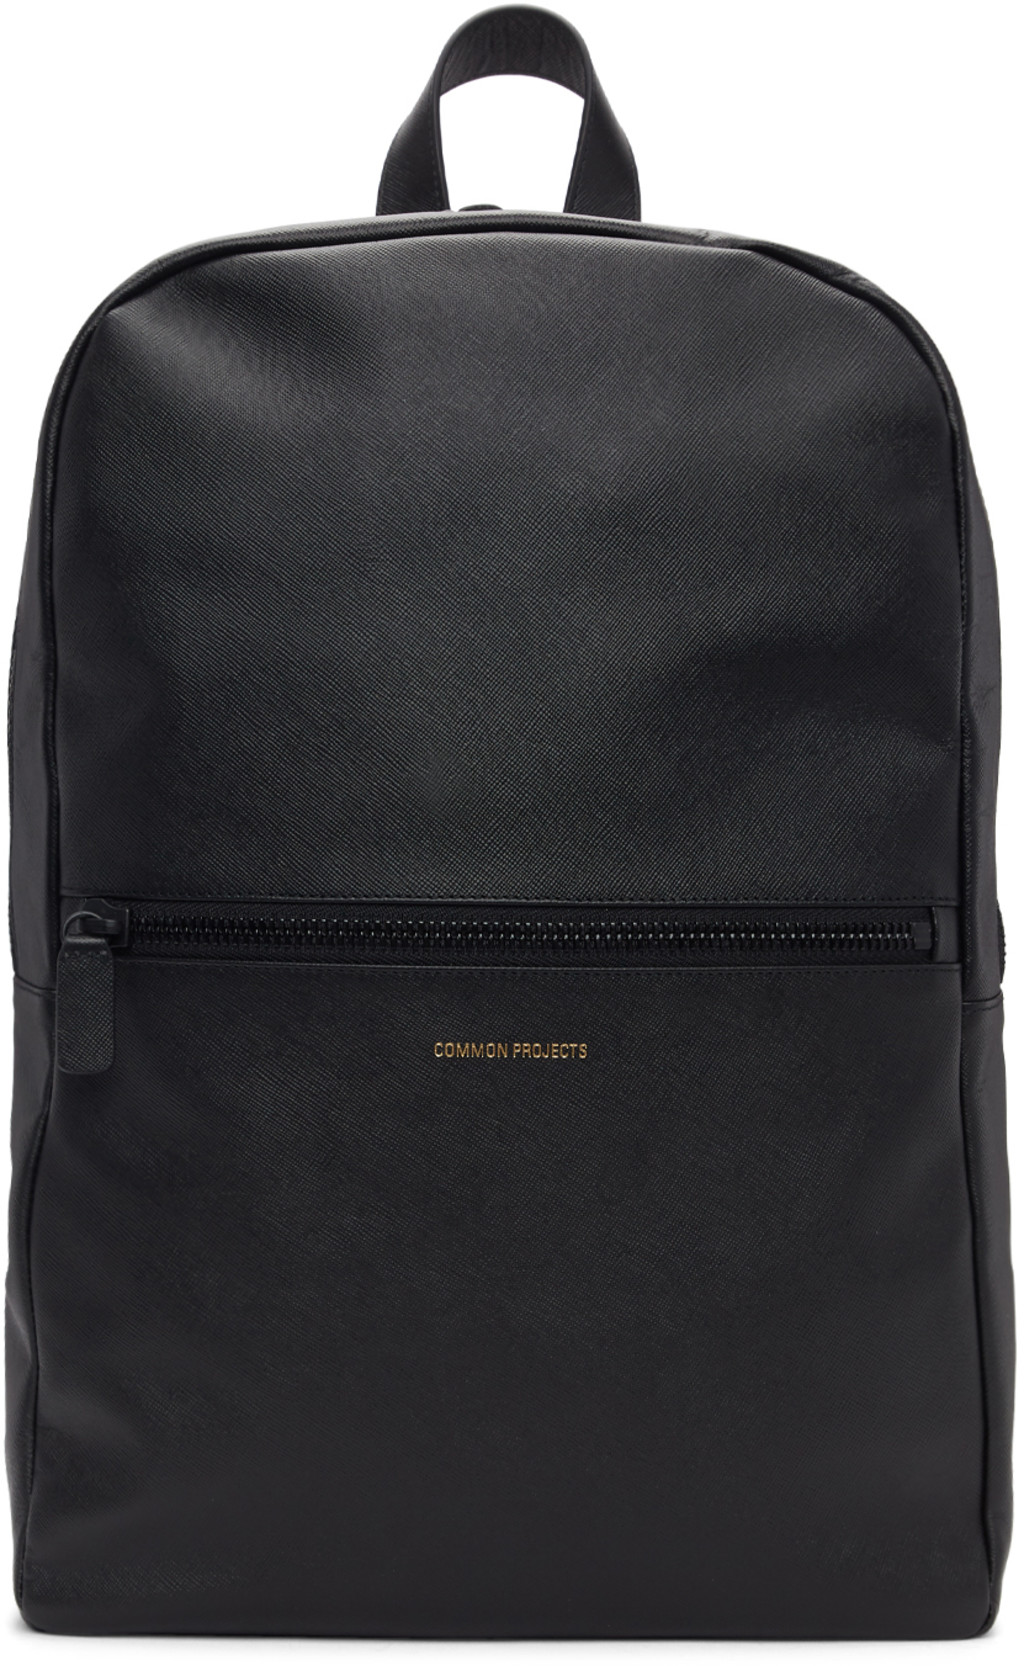 Designer bags for Men   SSENSE ed514253a9